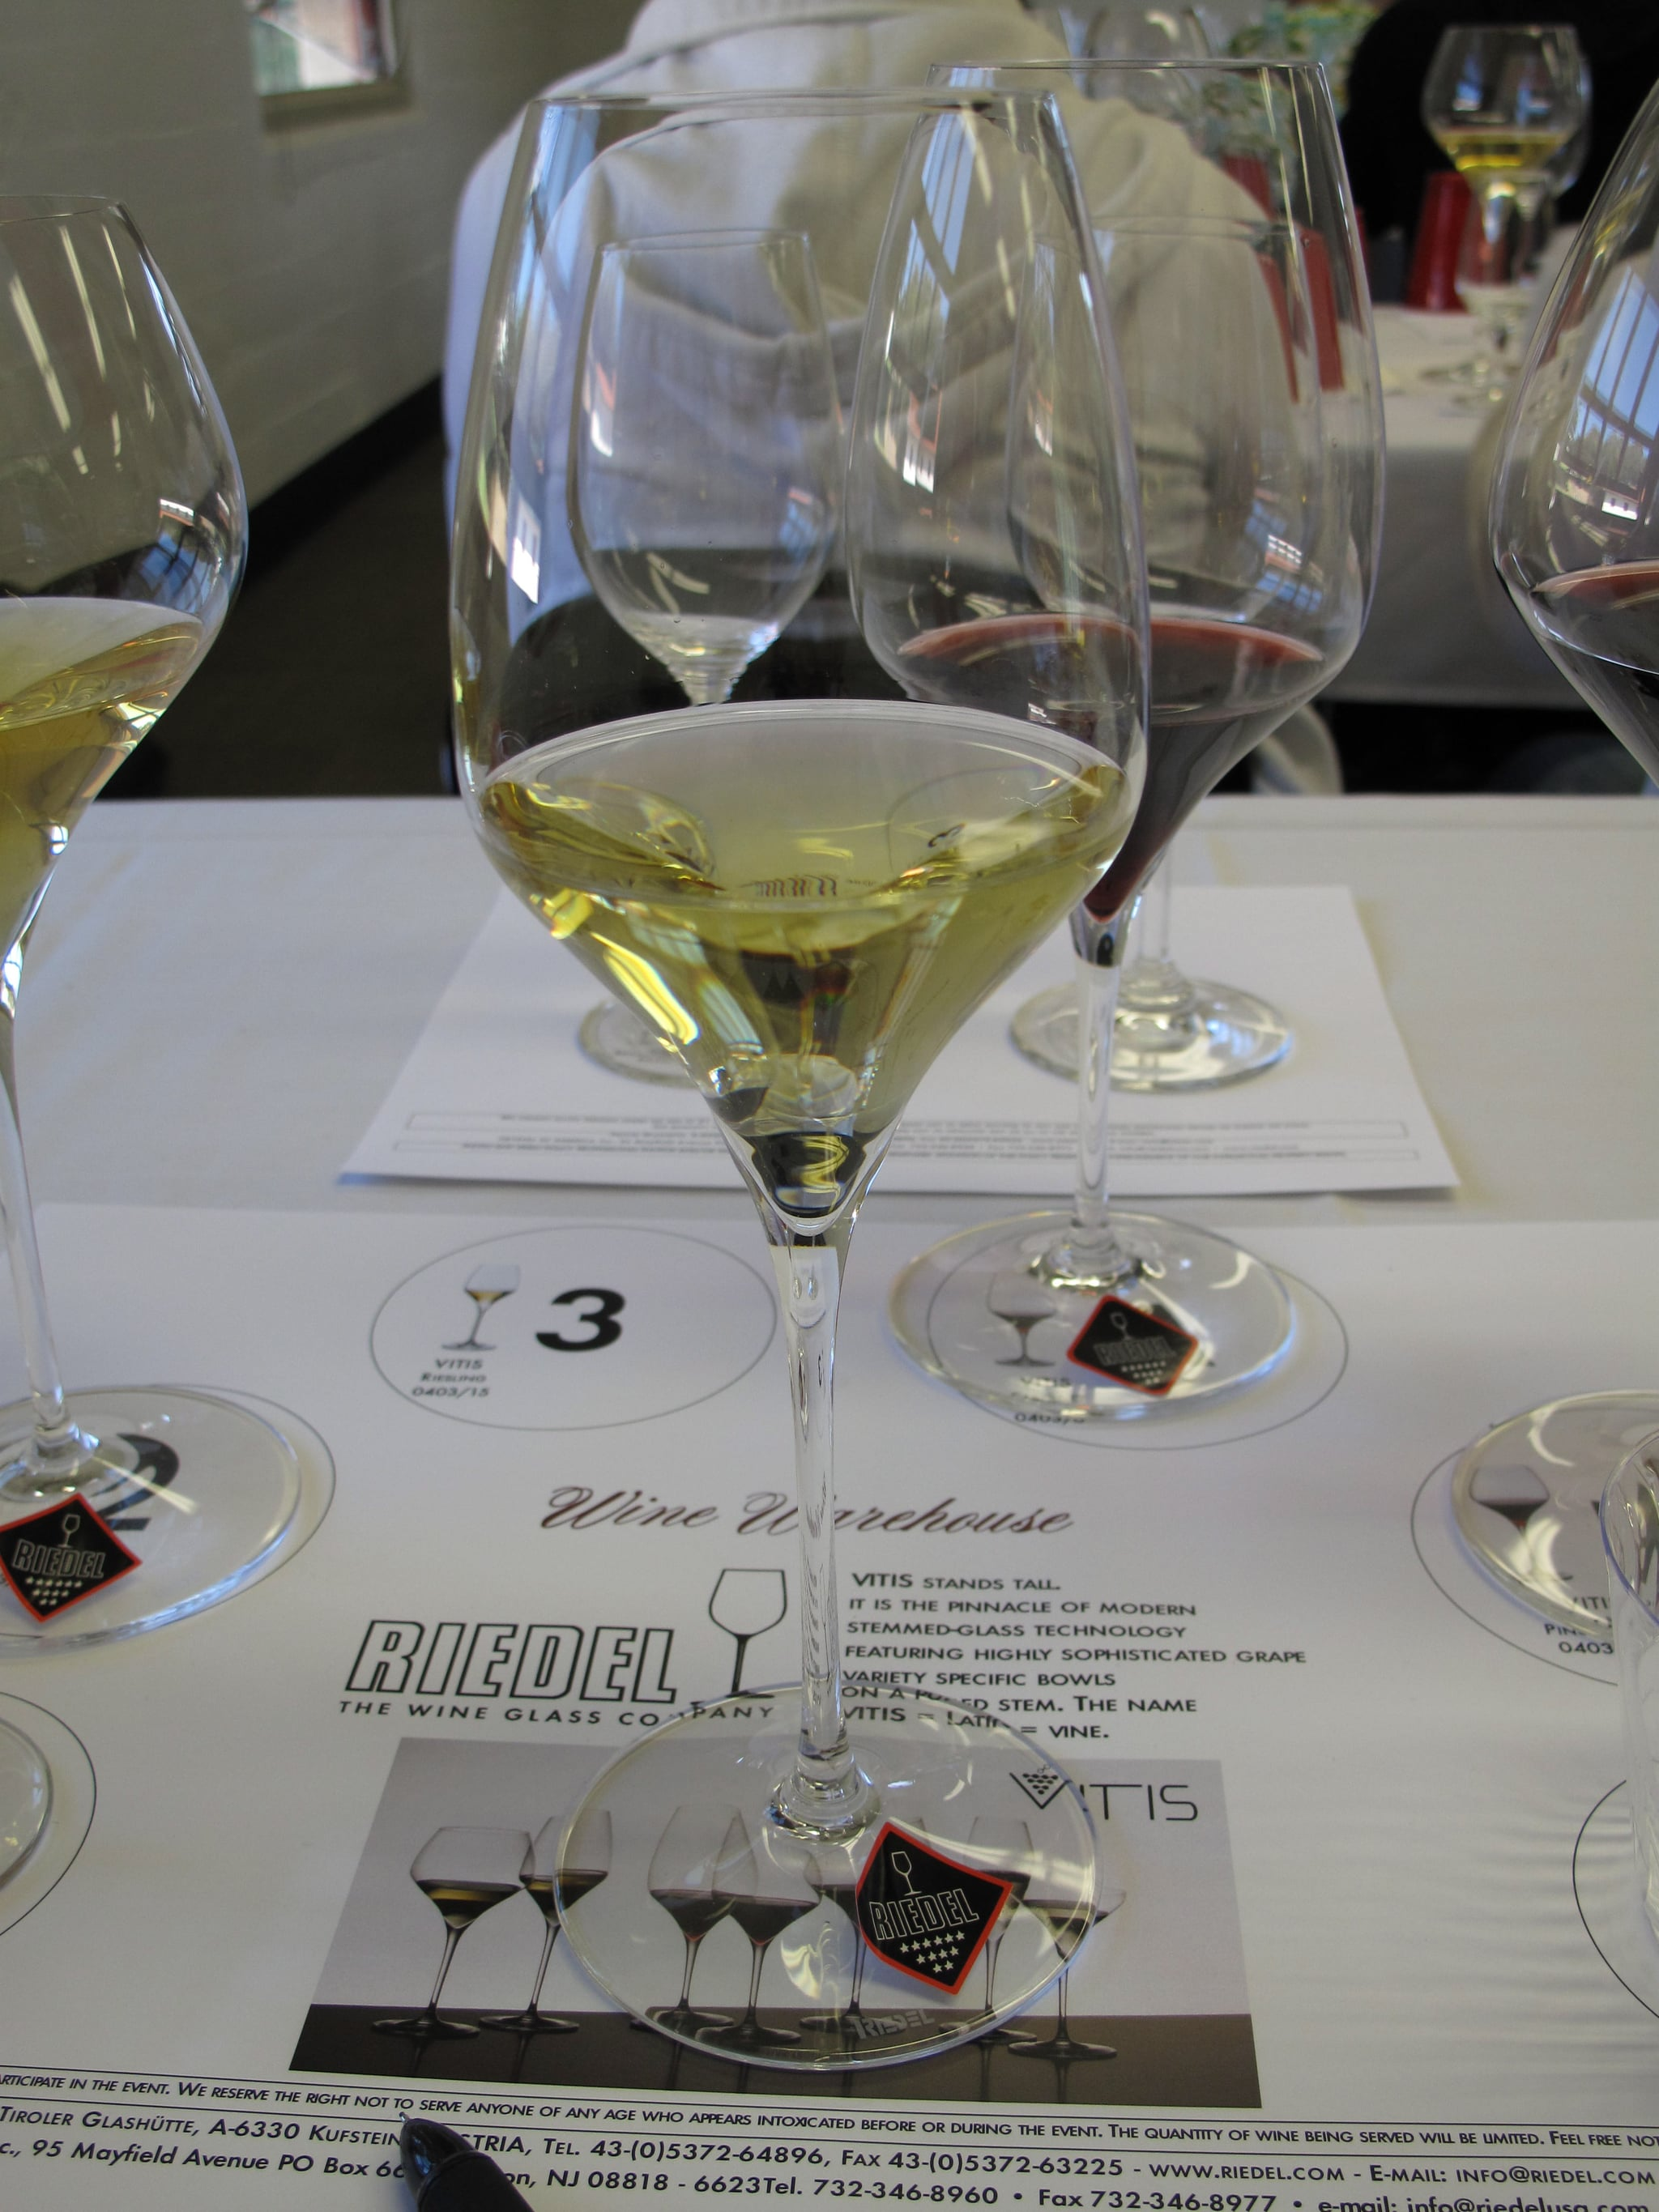 The Riedel Vitis glass designed for Riesling and Sauvignon Blanc allowed our German Riesling to hit the tip of the palate first, registering diesel notes on the nose, as well as qualities of lychee, herbs, and honey.